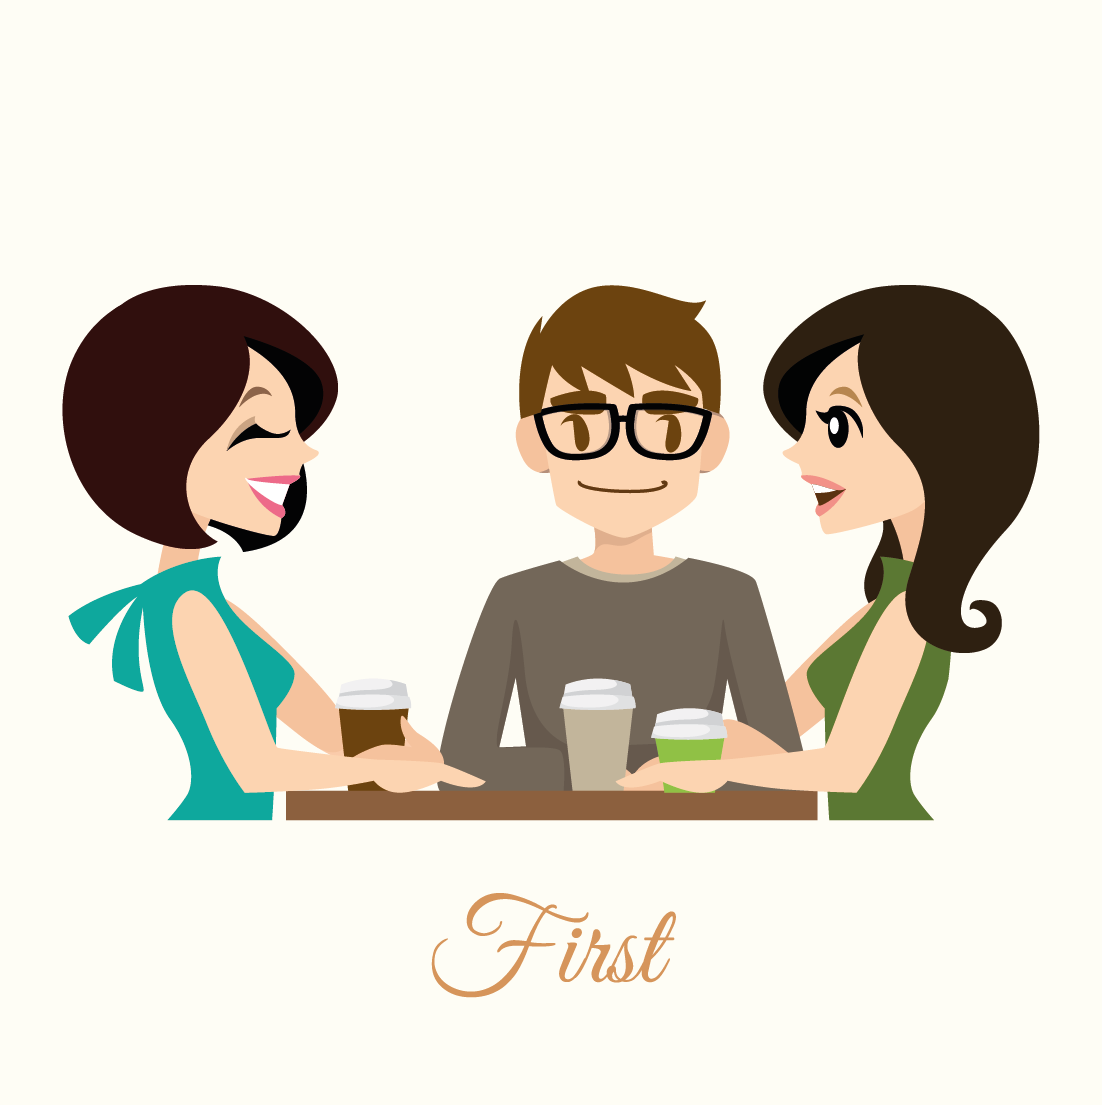 Coffee date   (complimentary as always)  We line up a coffee date, so that the three of us can get to know each other better. Here I'll be looking to uncover your personalities; find out about your likes and dislikes - and what ingredients might make your perfect day. Of course, our date will also give you both the opportunity to ask questions until your hearts are content.